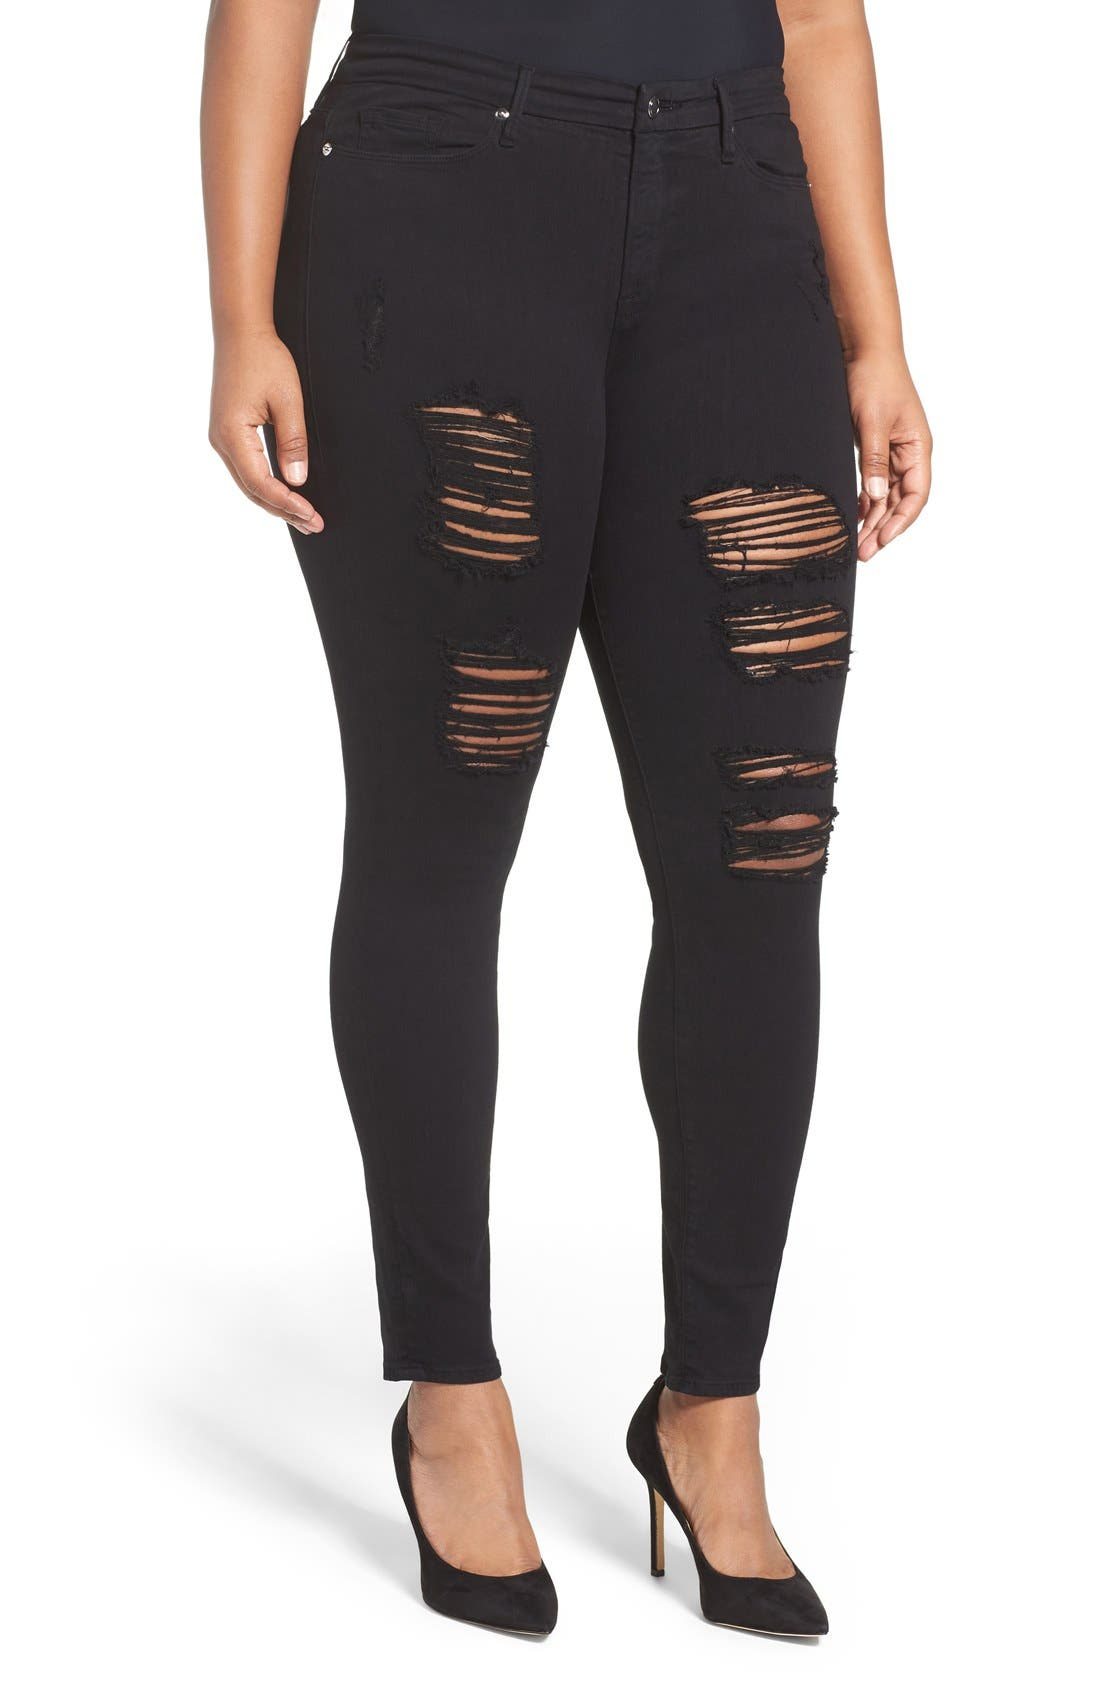 Main Image - Good American Good Legs High Rise Ripped Skinny Jeans